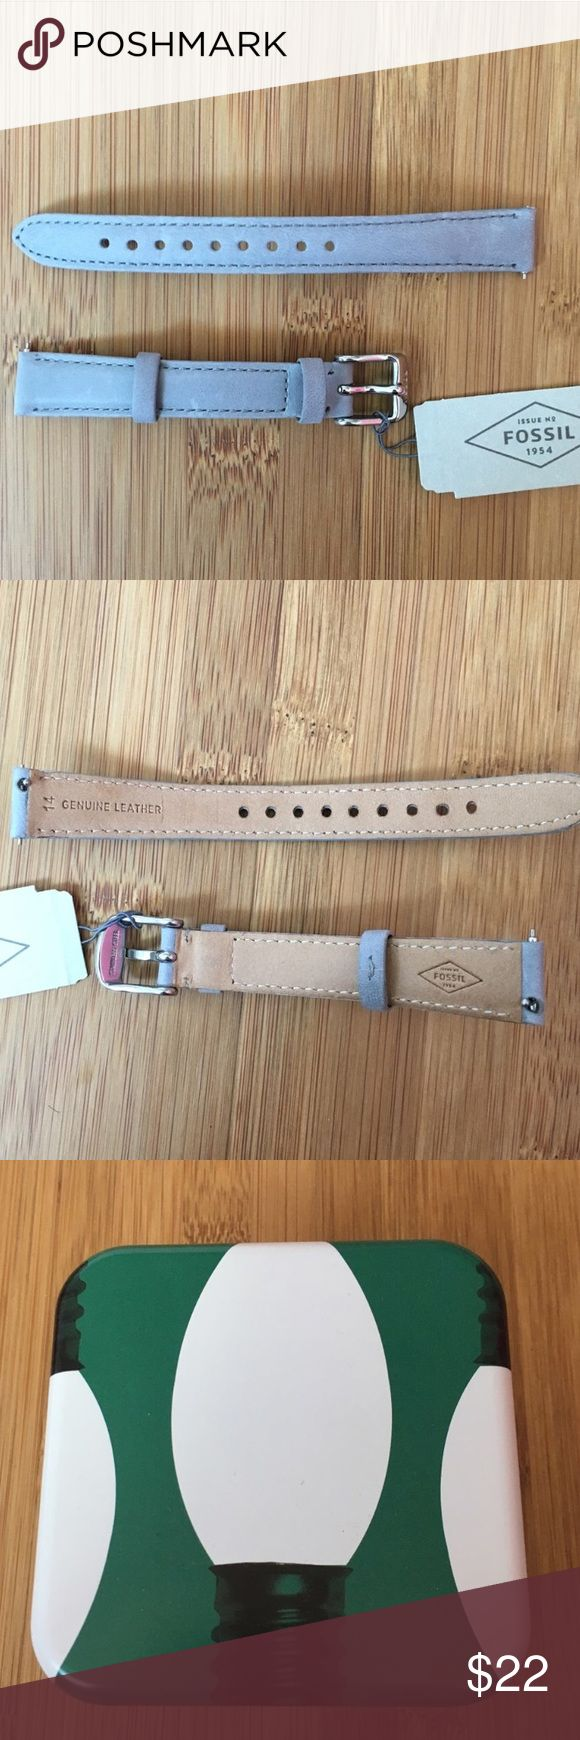 Gray leather Fossil watch strap! Genuine Leather 14mm New with tag Includes Fossil Tin! 🕰  #fossil #watchstrap #strap #band #watch #womens #14mm #newwithtags #gray #tin #fossiltin Fossil Accessories Watches